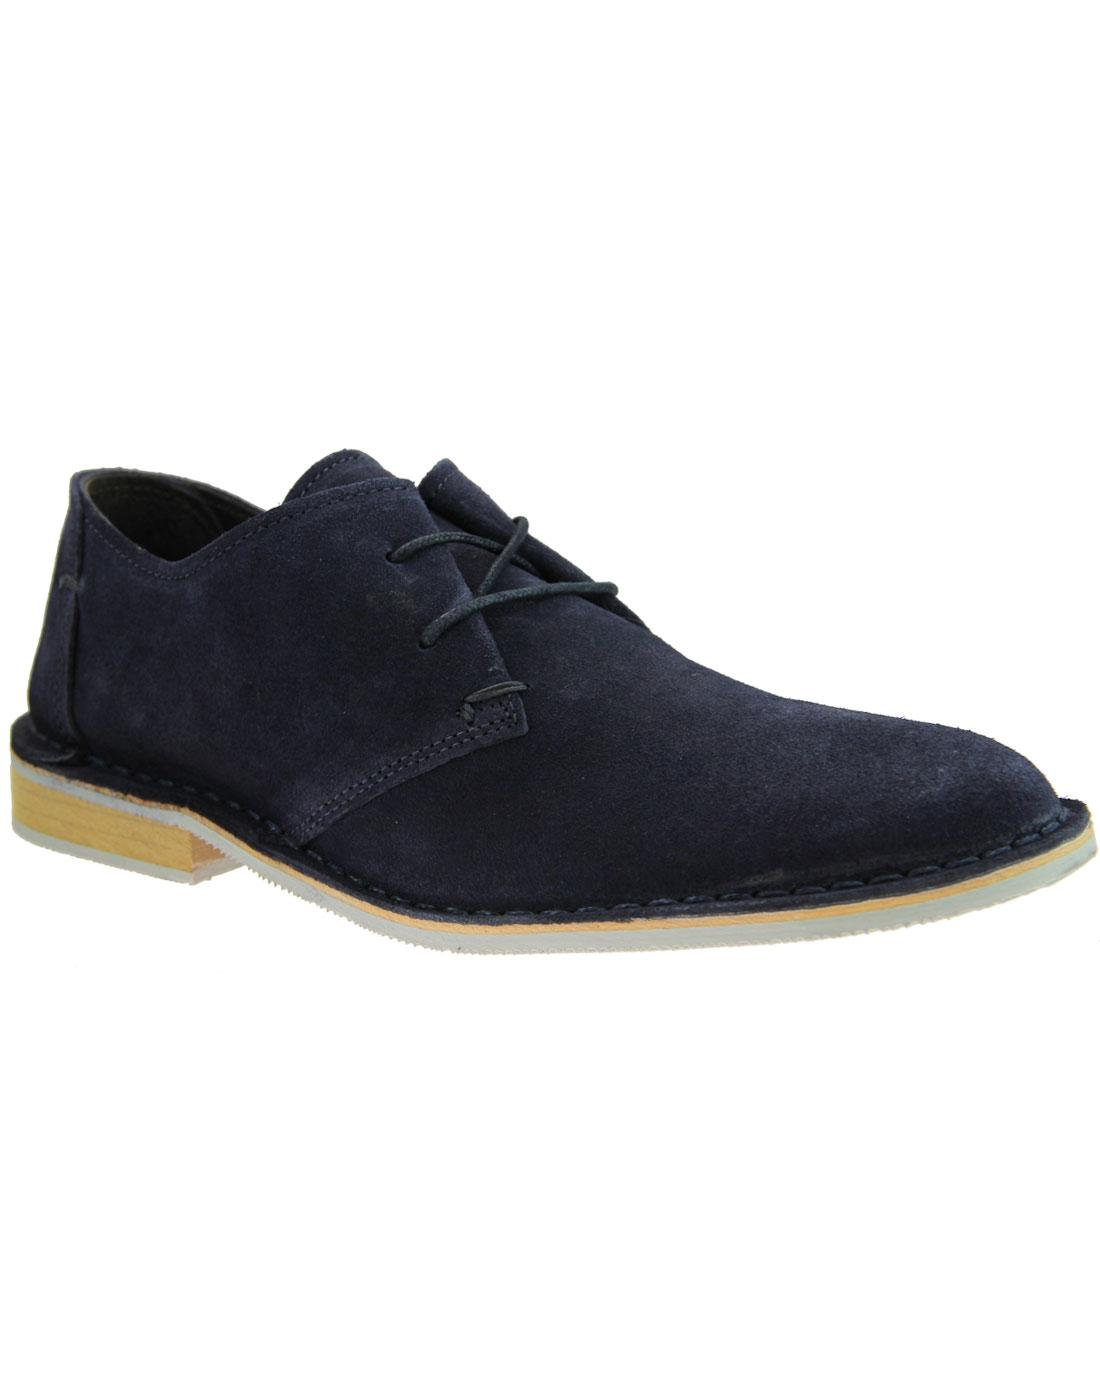 Franklin IKON Retro Mod Suede Desert Shoes NAVY